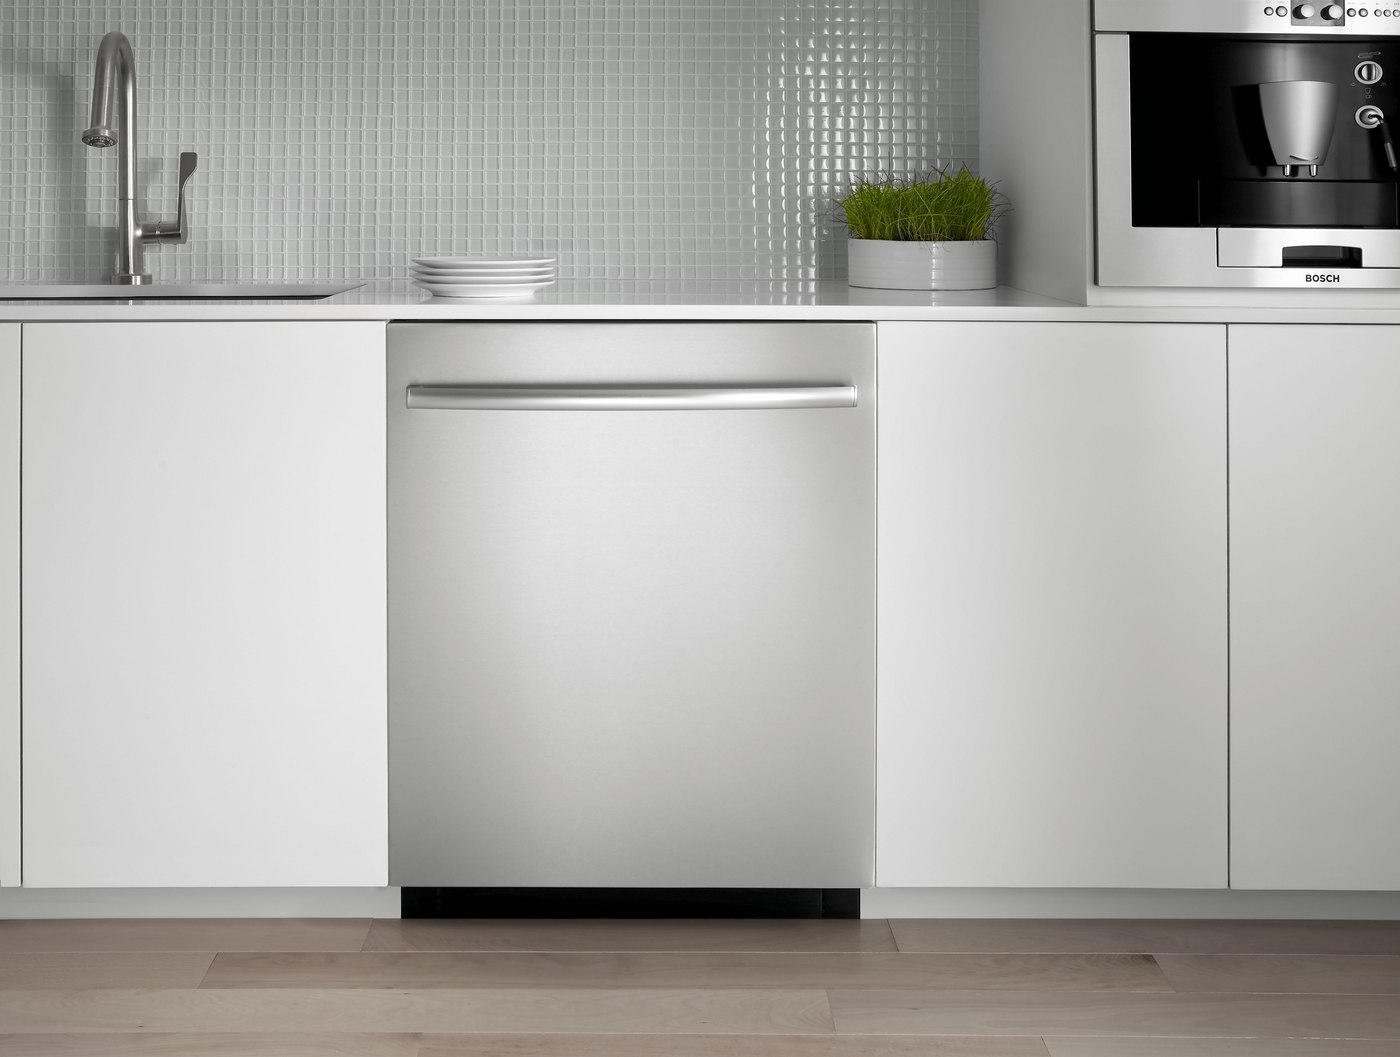 European Style Dishwashers (Reviews / Ratings)